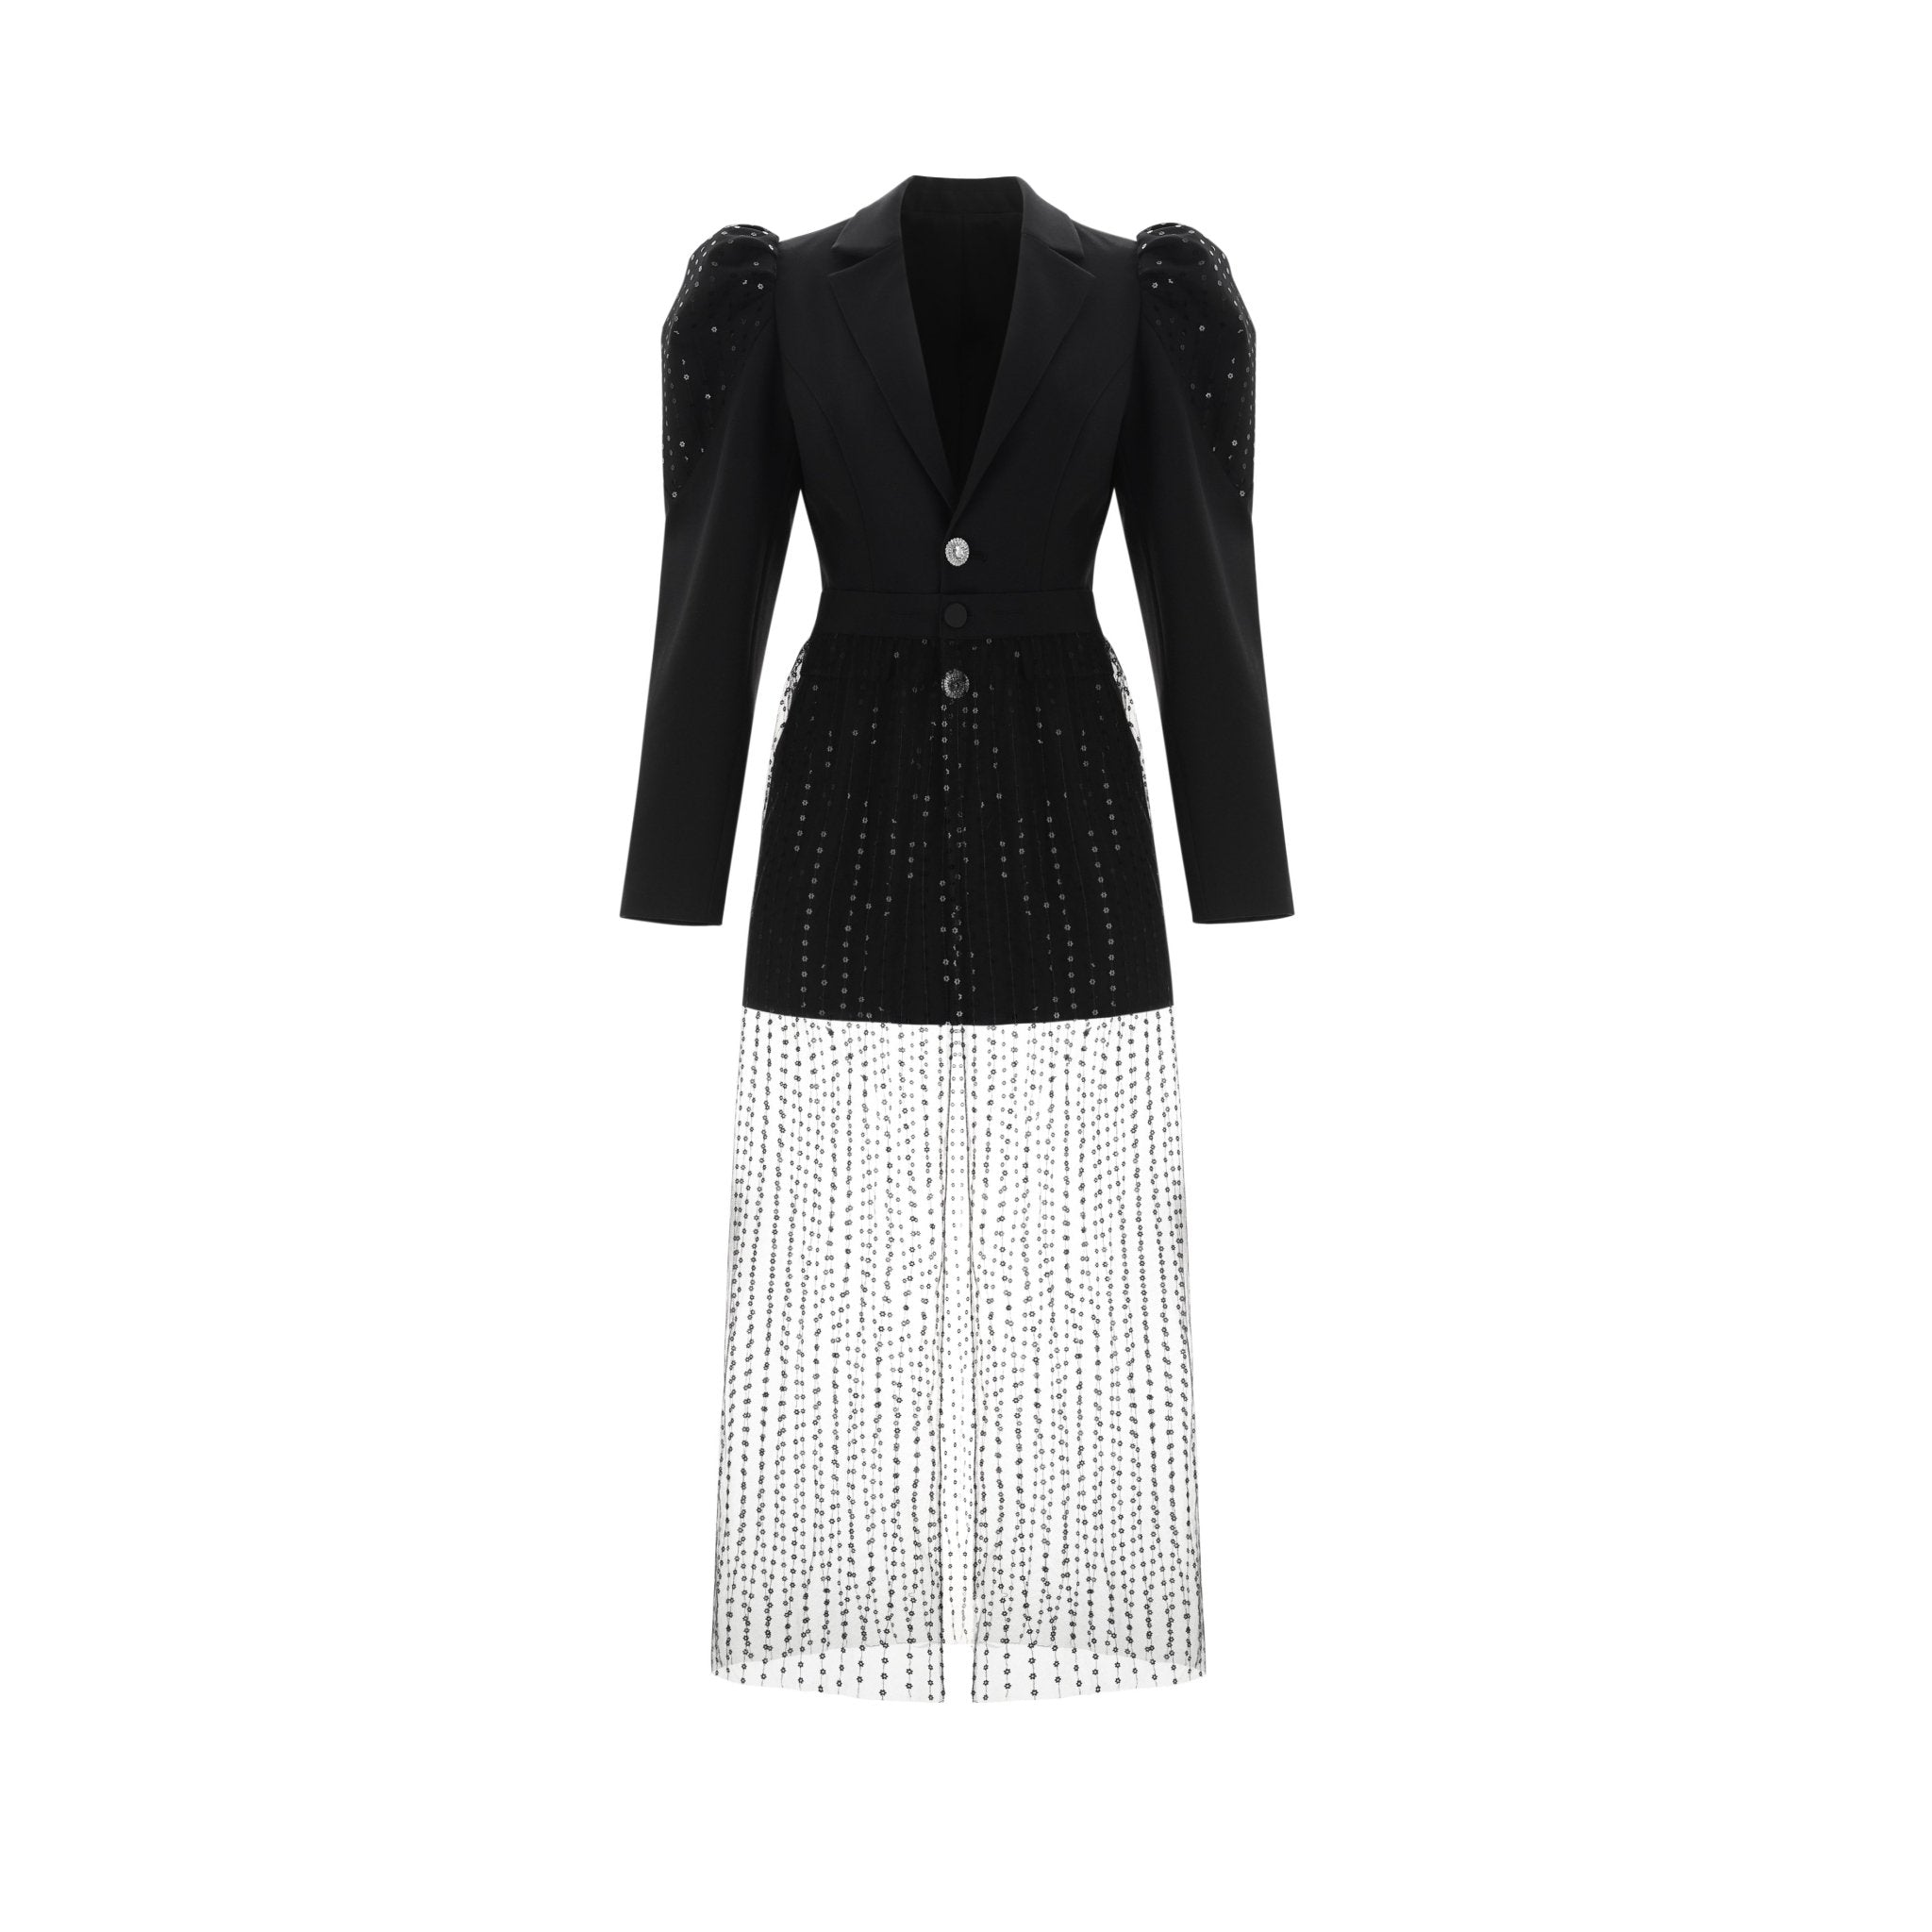 WARM AID Black Mesh Blazer Jacket | MADA IN CHINA